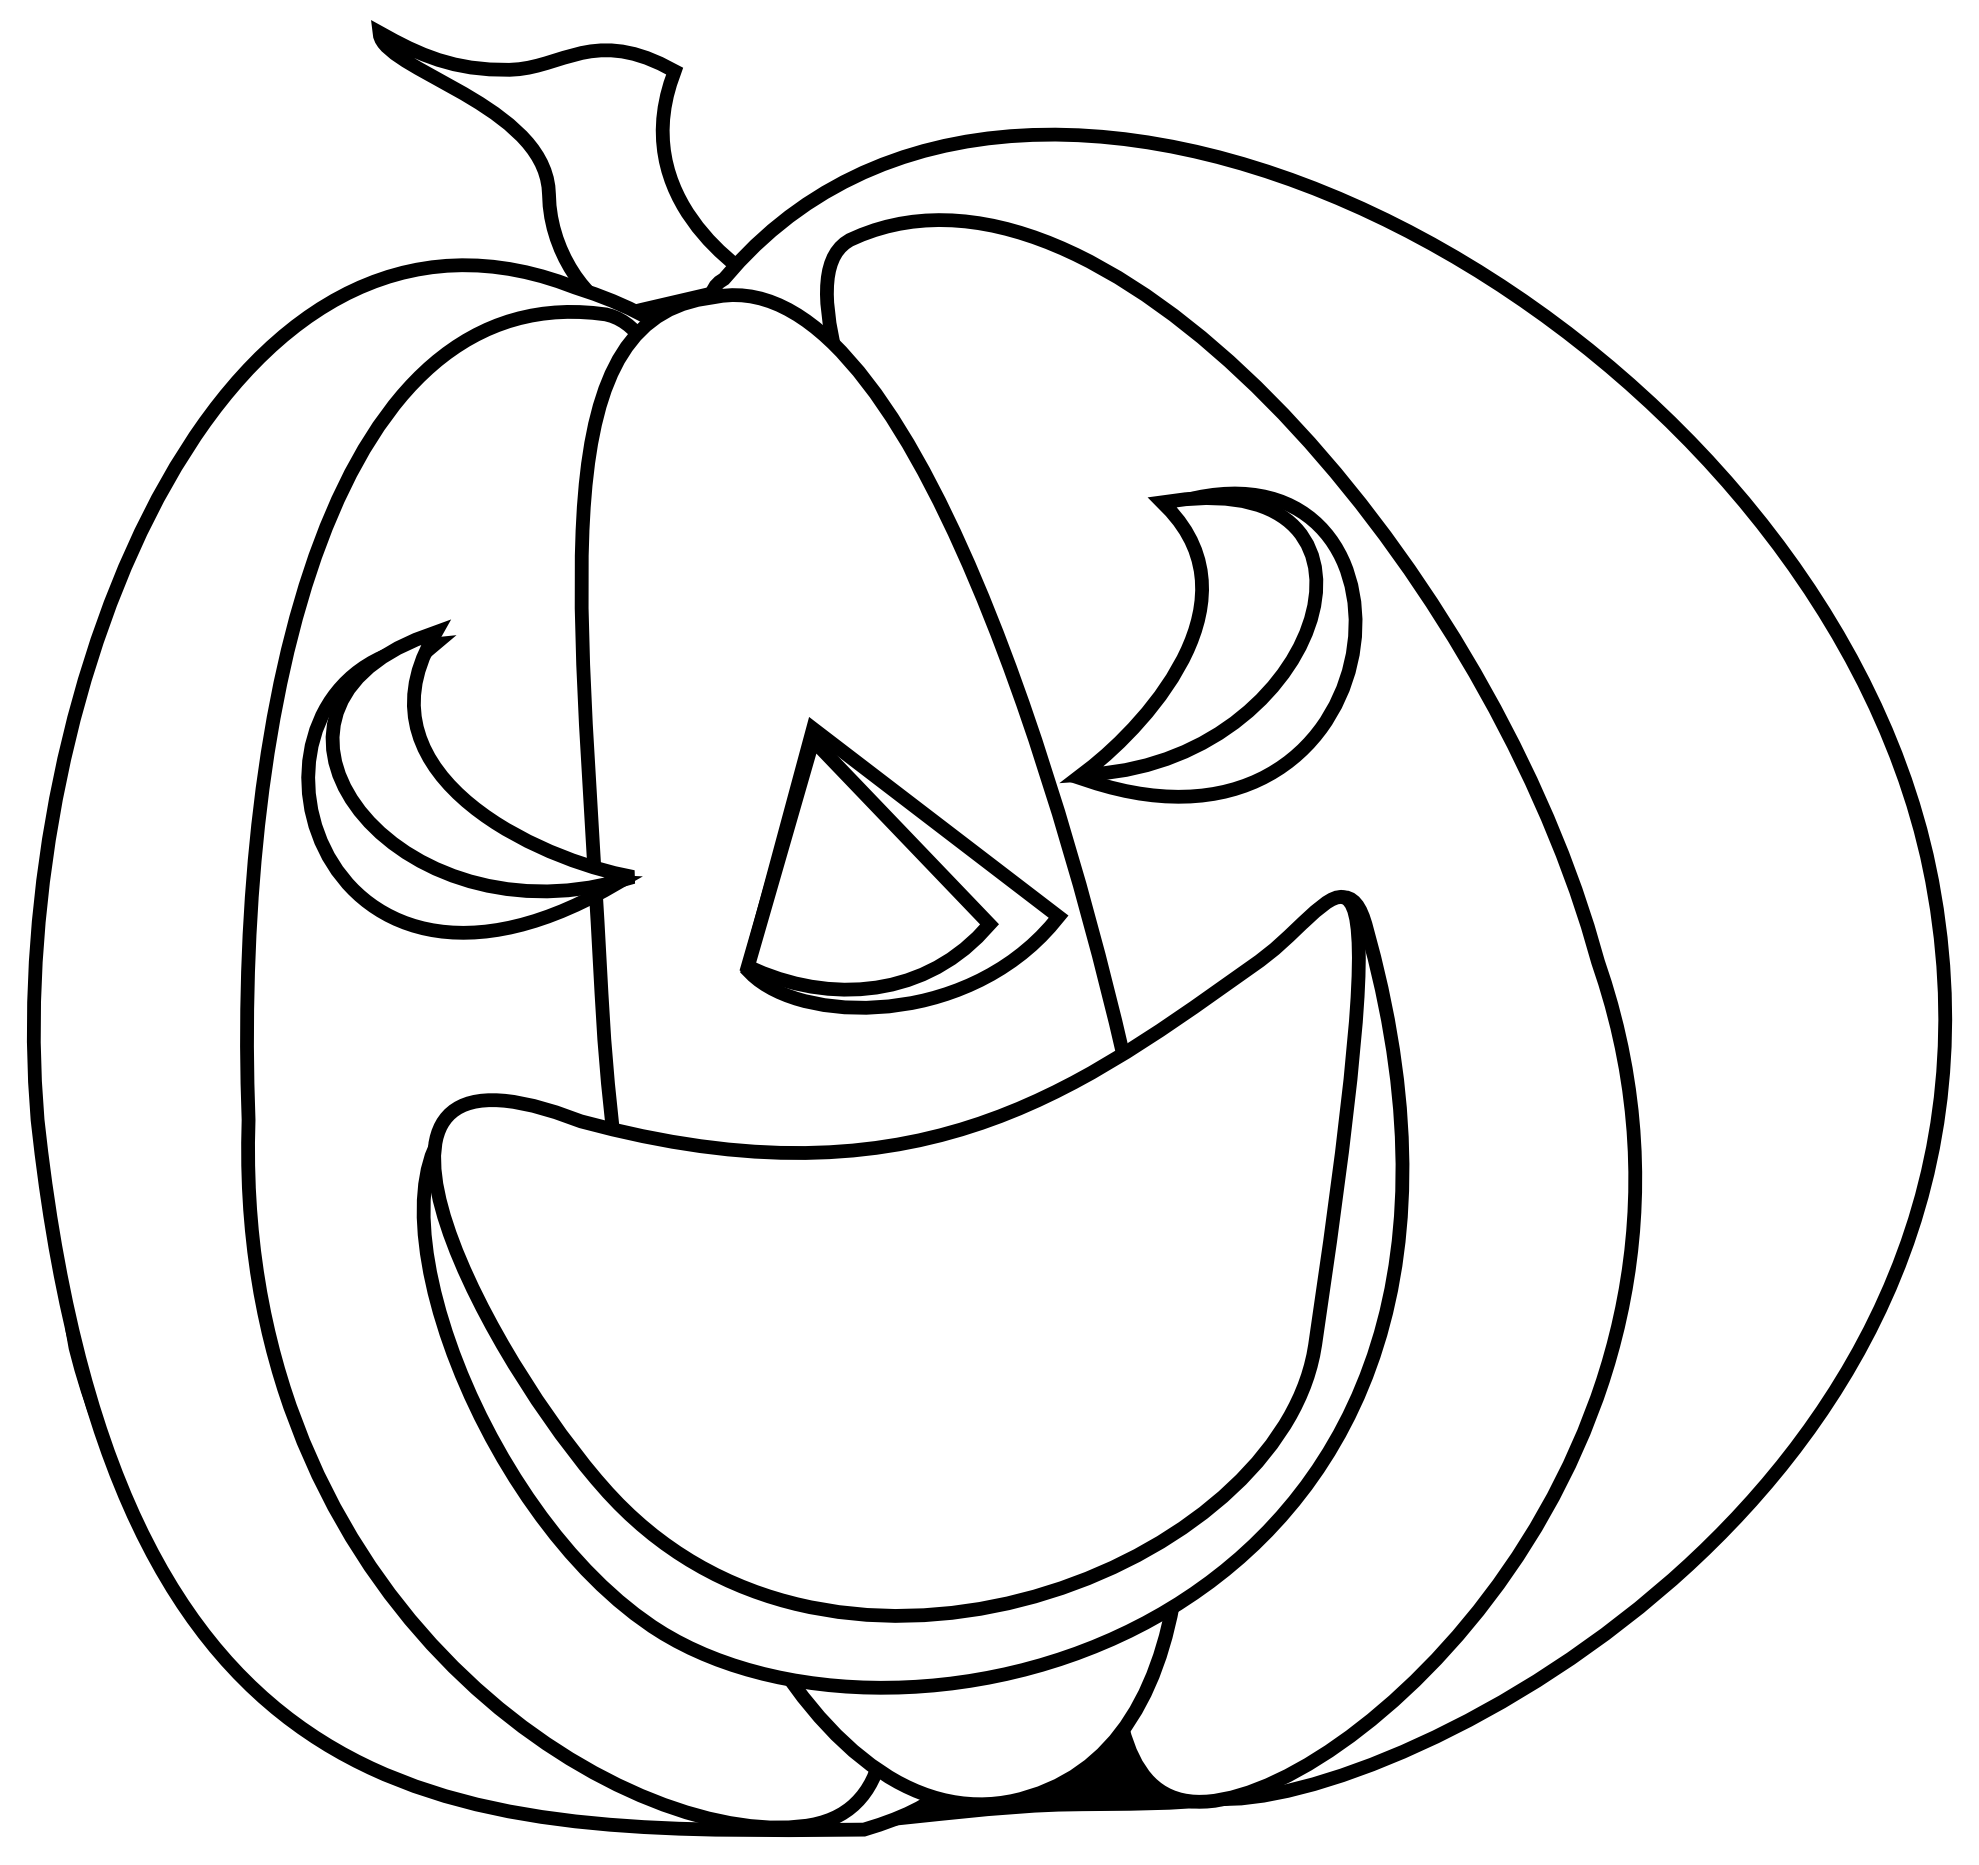 coloring clipart halloween black and white halloween black and white halloween clip art black and and coloring clipart black white halloween